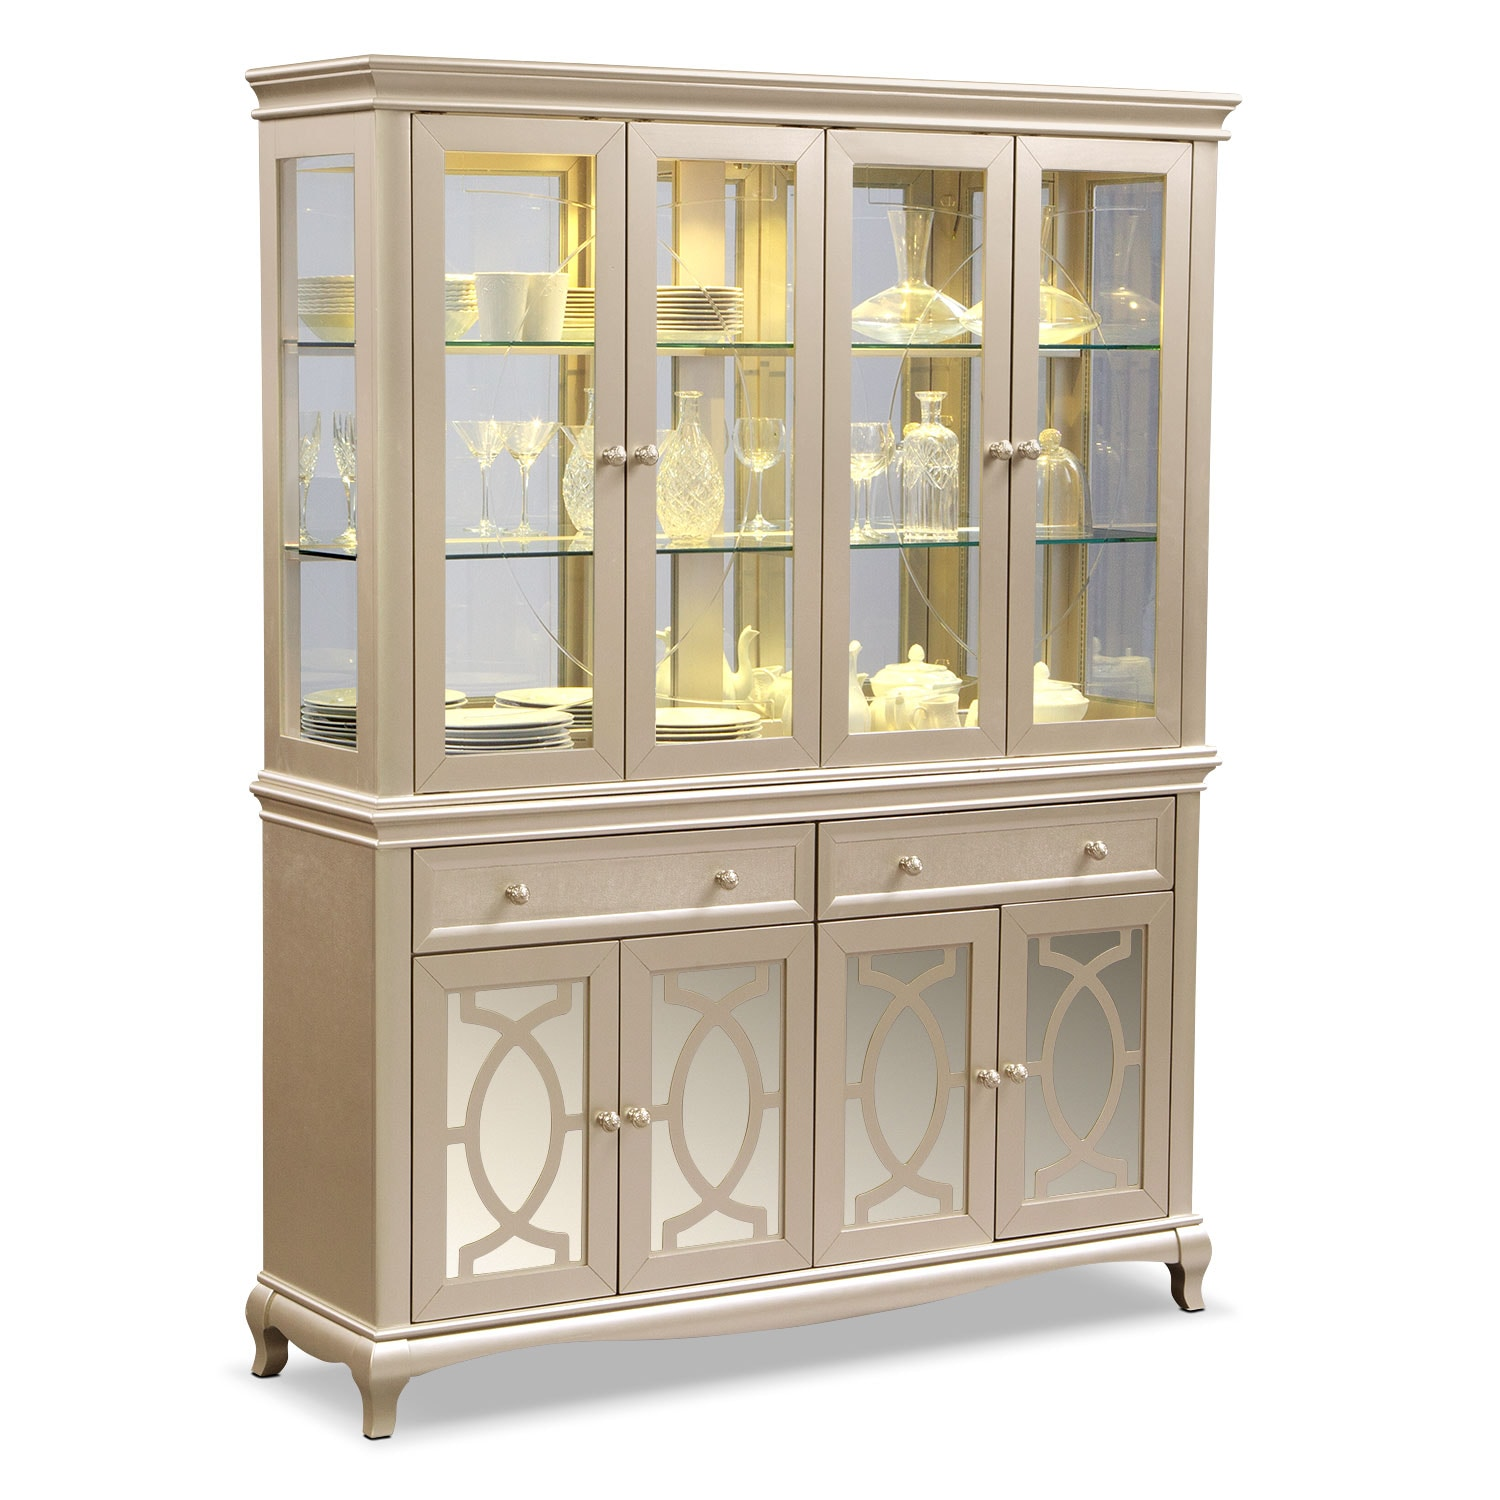 Dining Room Furniture - Allegro Buffet and Hutch